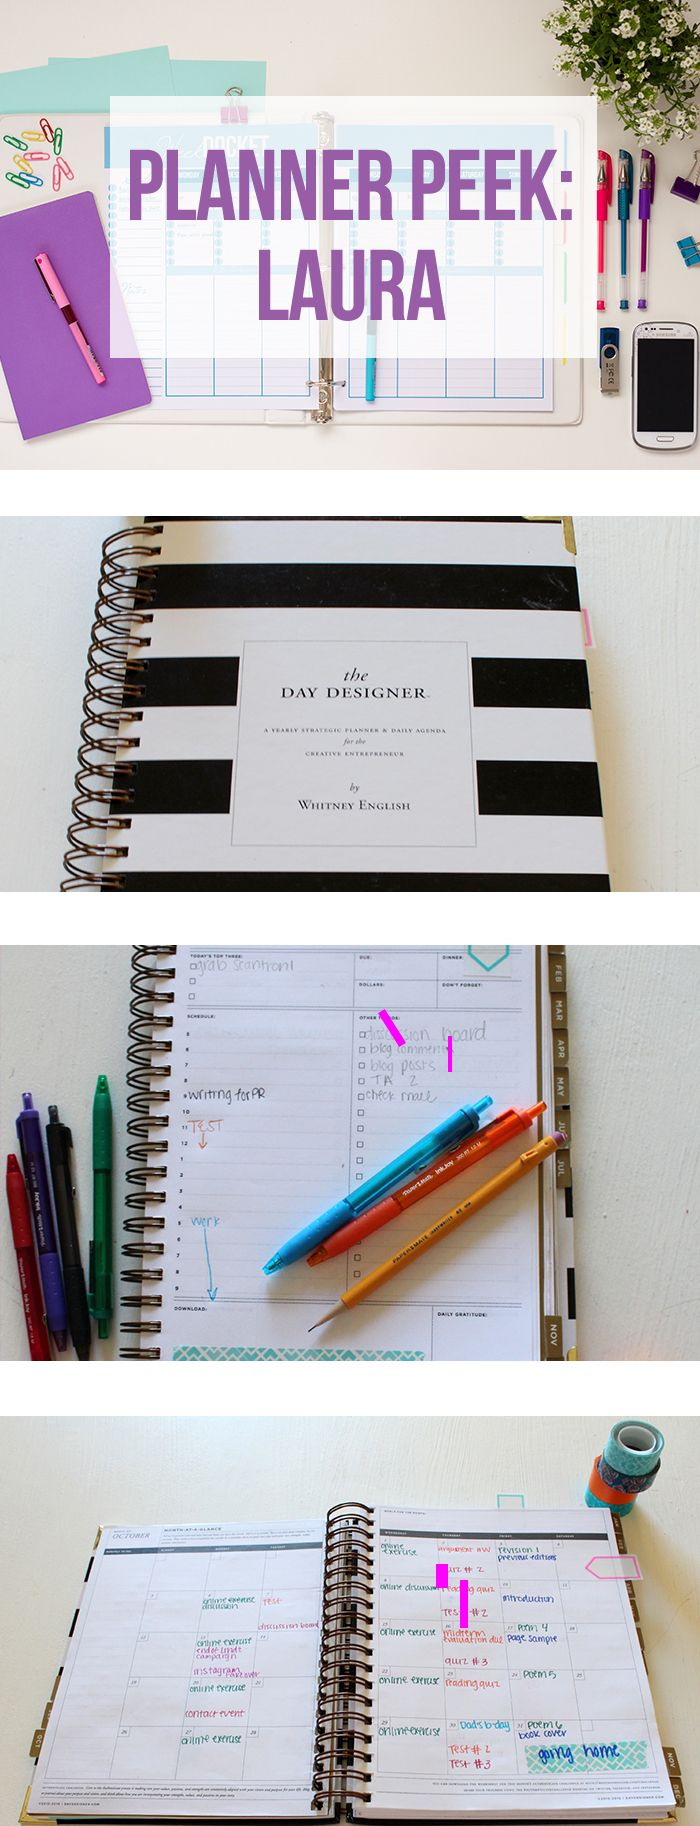 Take a tour of Laura's Day Designer Planner. She uses the planner to keep to track of her busy life as a full time student and a blogger. She loves the daily planning view which really allows her to keep track of everything on her plate.